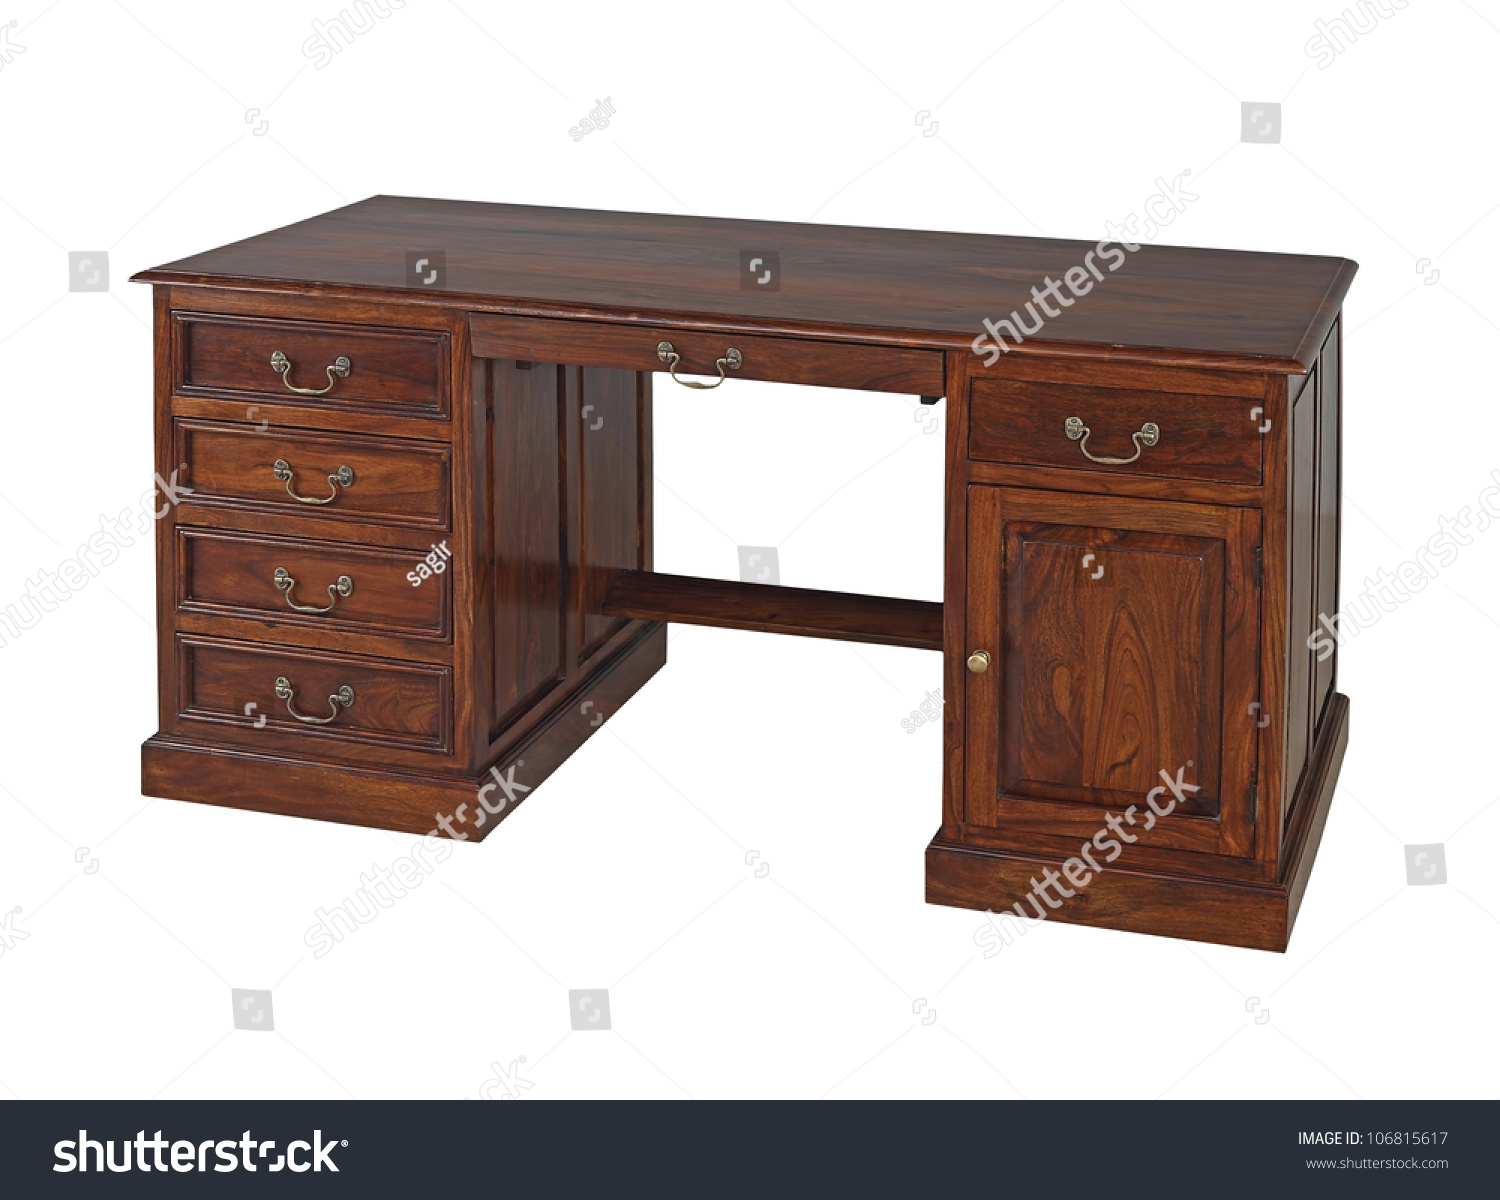 antique wooden office desk isolated on white background preview save to a lightbox antique office table